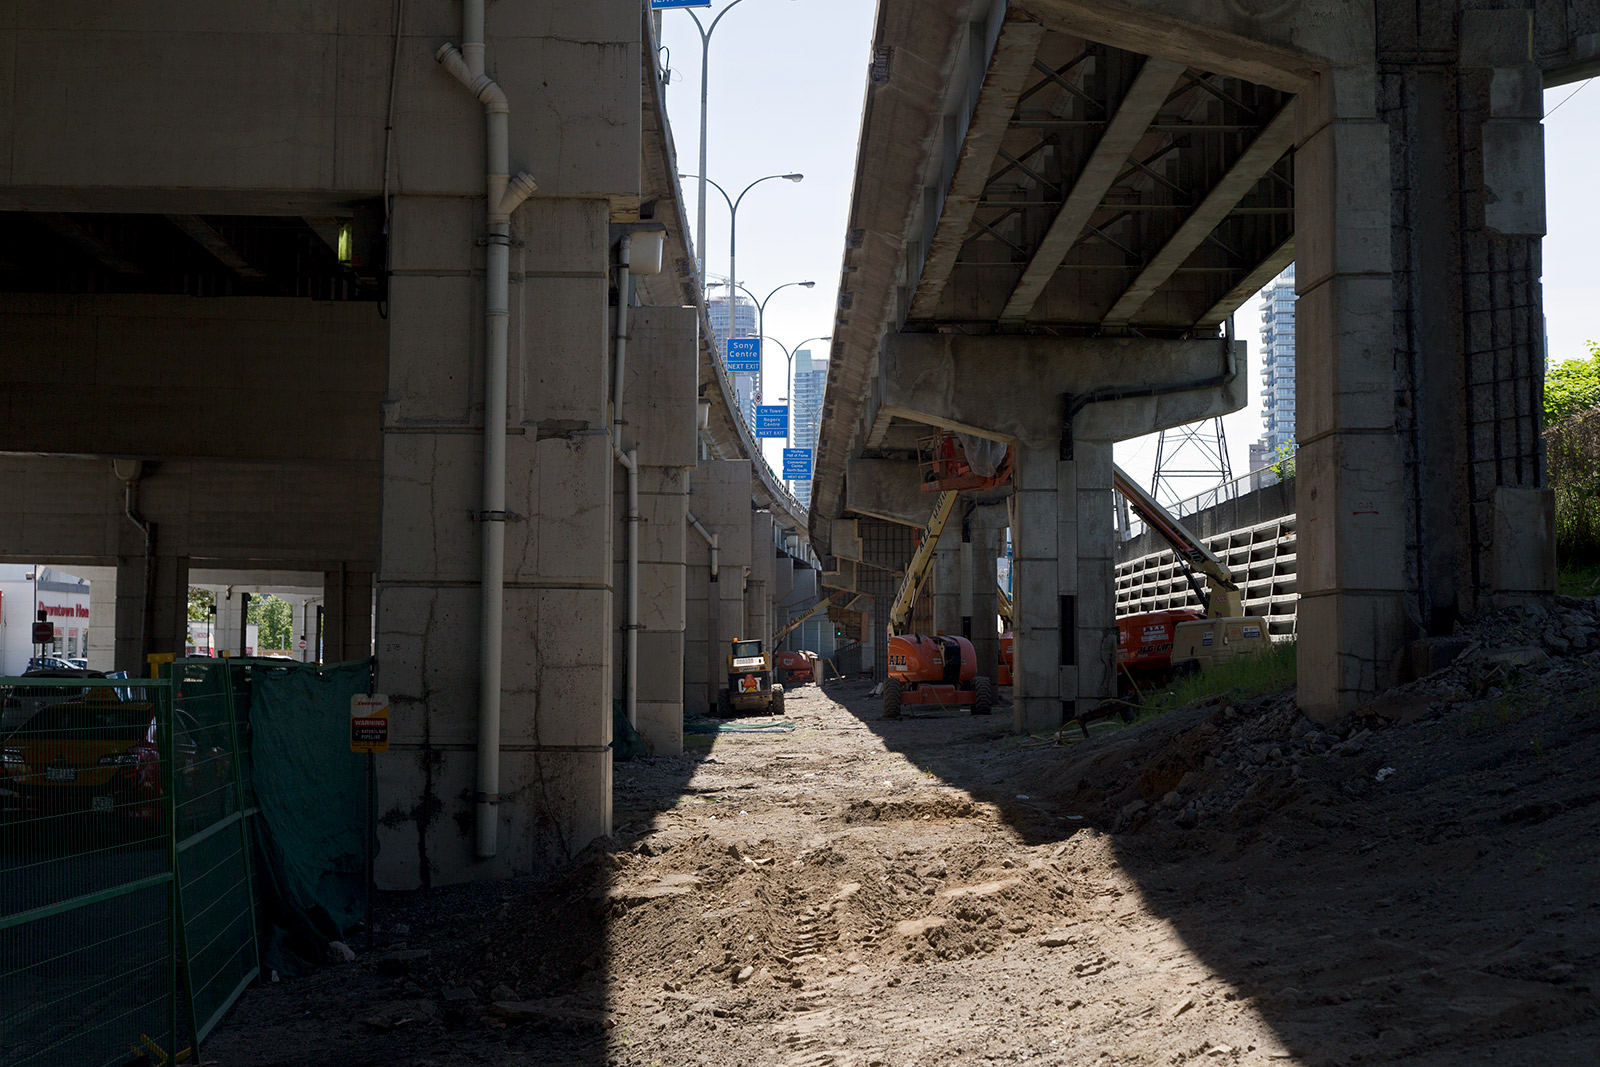 20140625. The sun shines between expressway and off-ramp under Toronto's Gardiner.